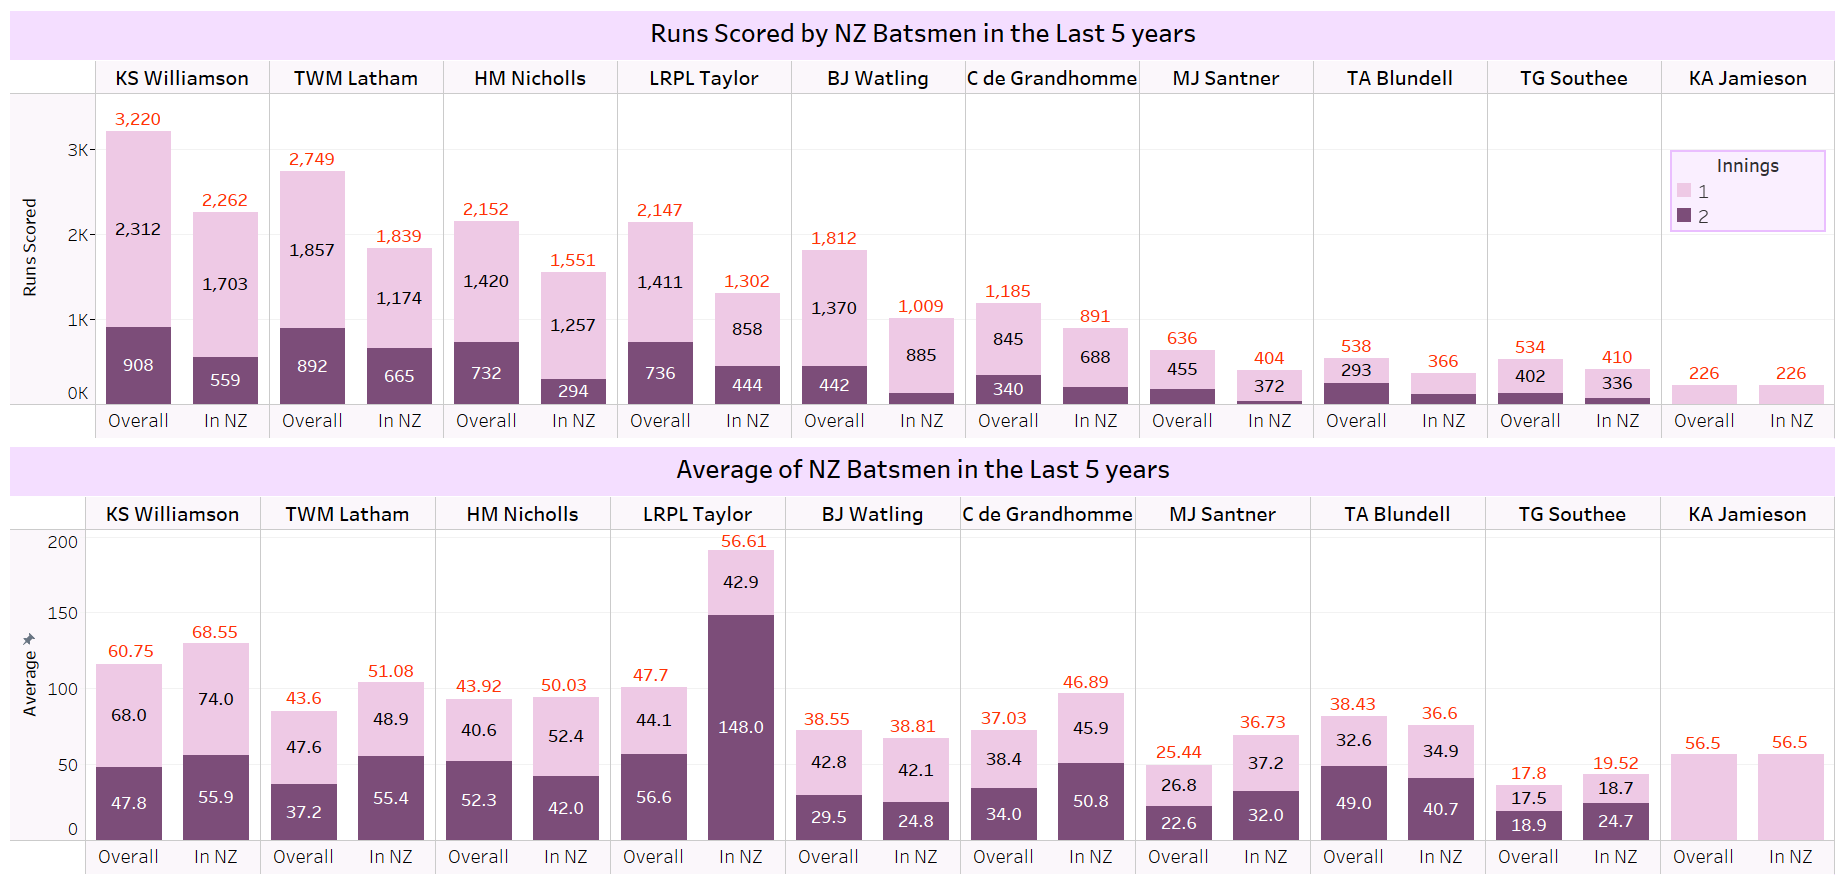 Runs scored and batting averages of New Zealand's batsmen in the last 5 years in Test cricket.